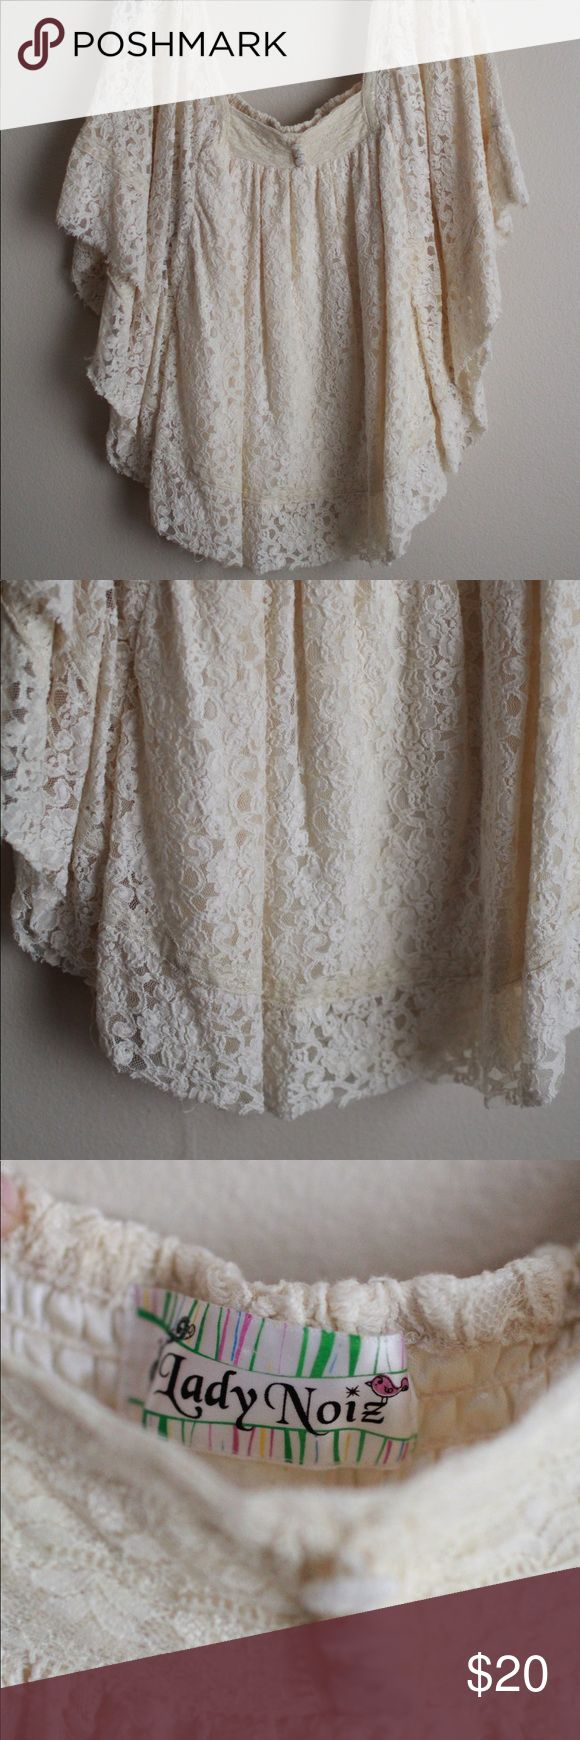 Lace Angel Tunic Blouse Find from a boutique shop, beautiful lace material lined beneath with silky material. Would require some kind of undershirt. Great for going out two-stepping or casual events. Lady Noiz Tops Blouses